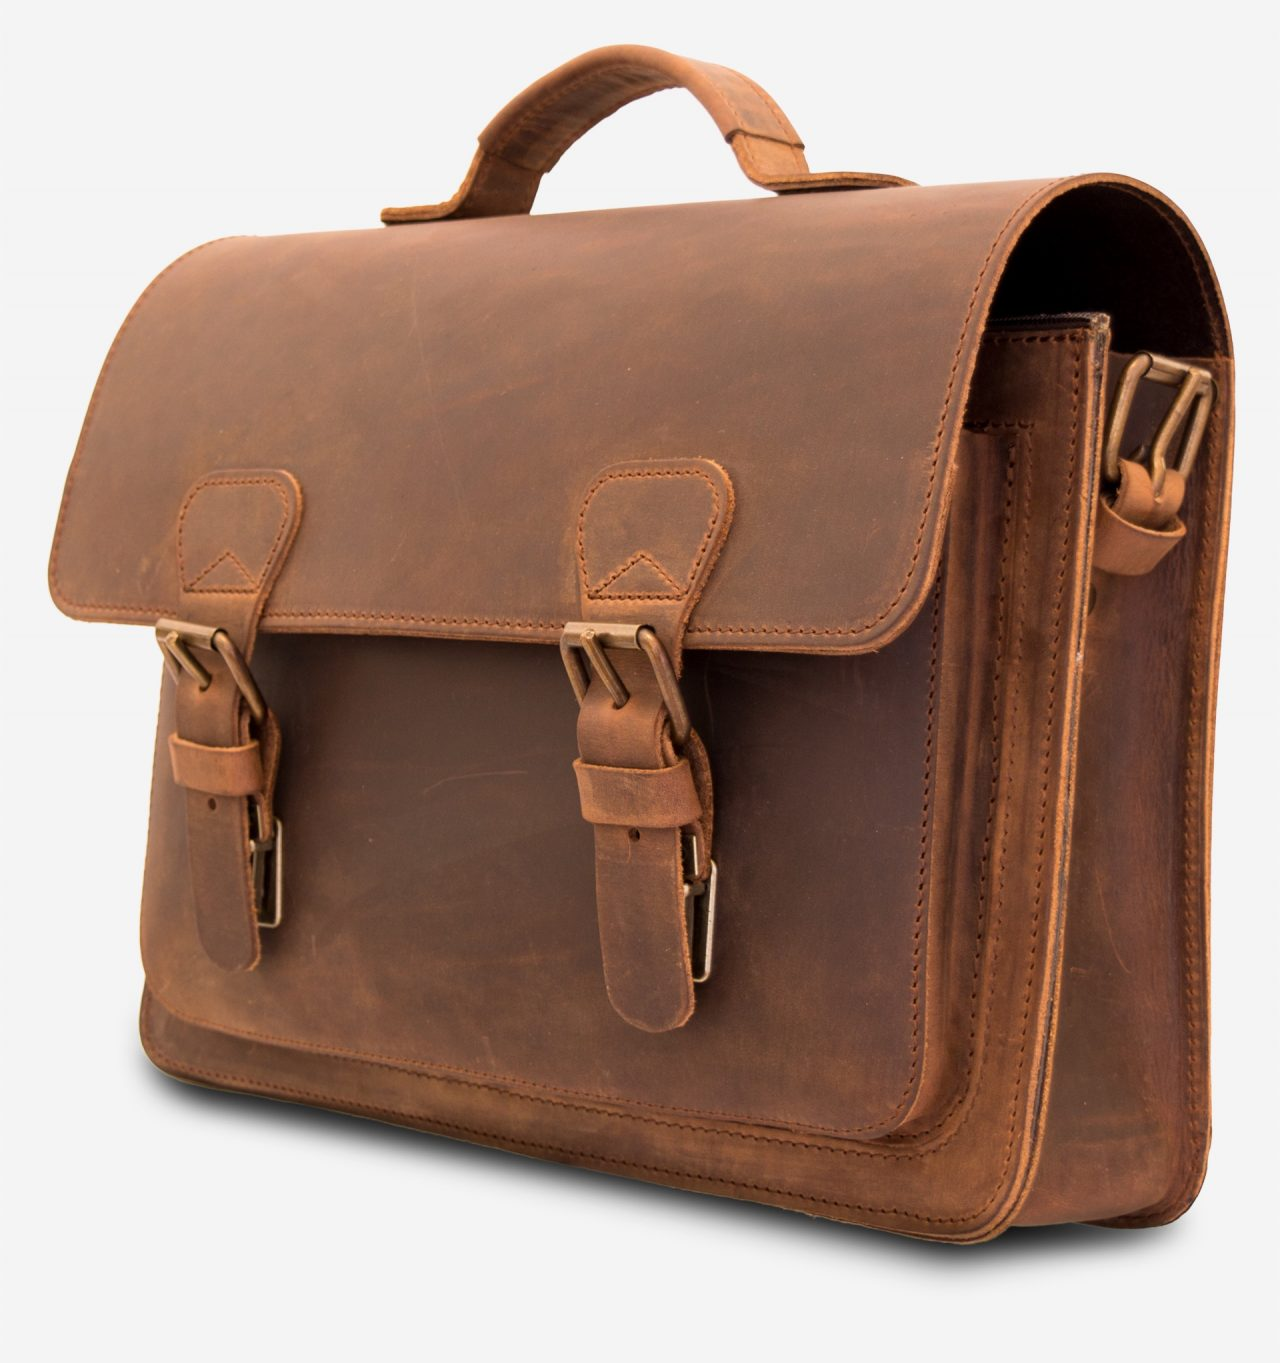 Front view of the vintage leather briefcase with one compartment and one front pocket.